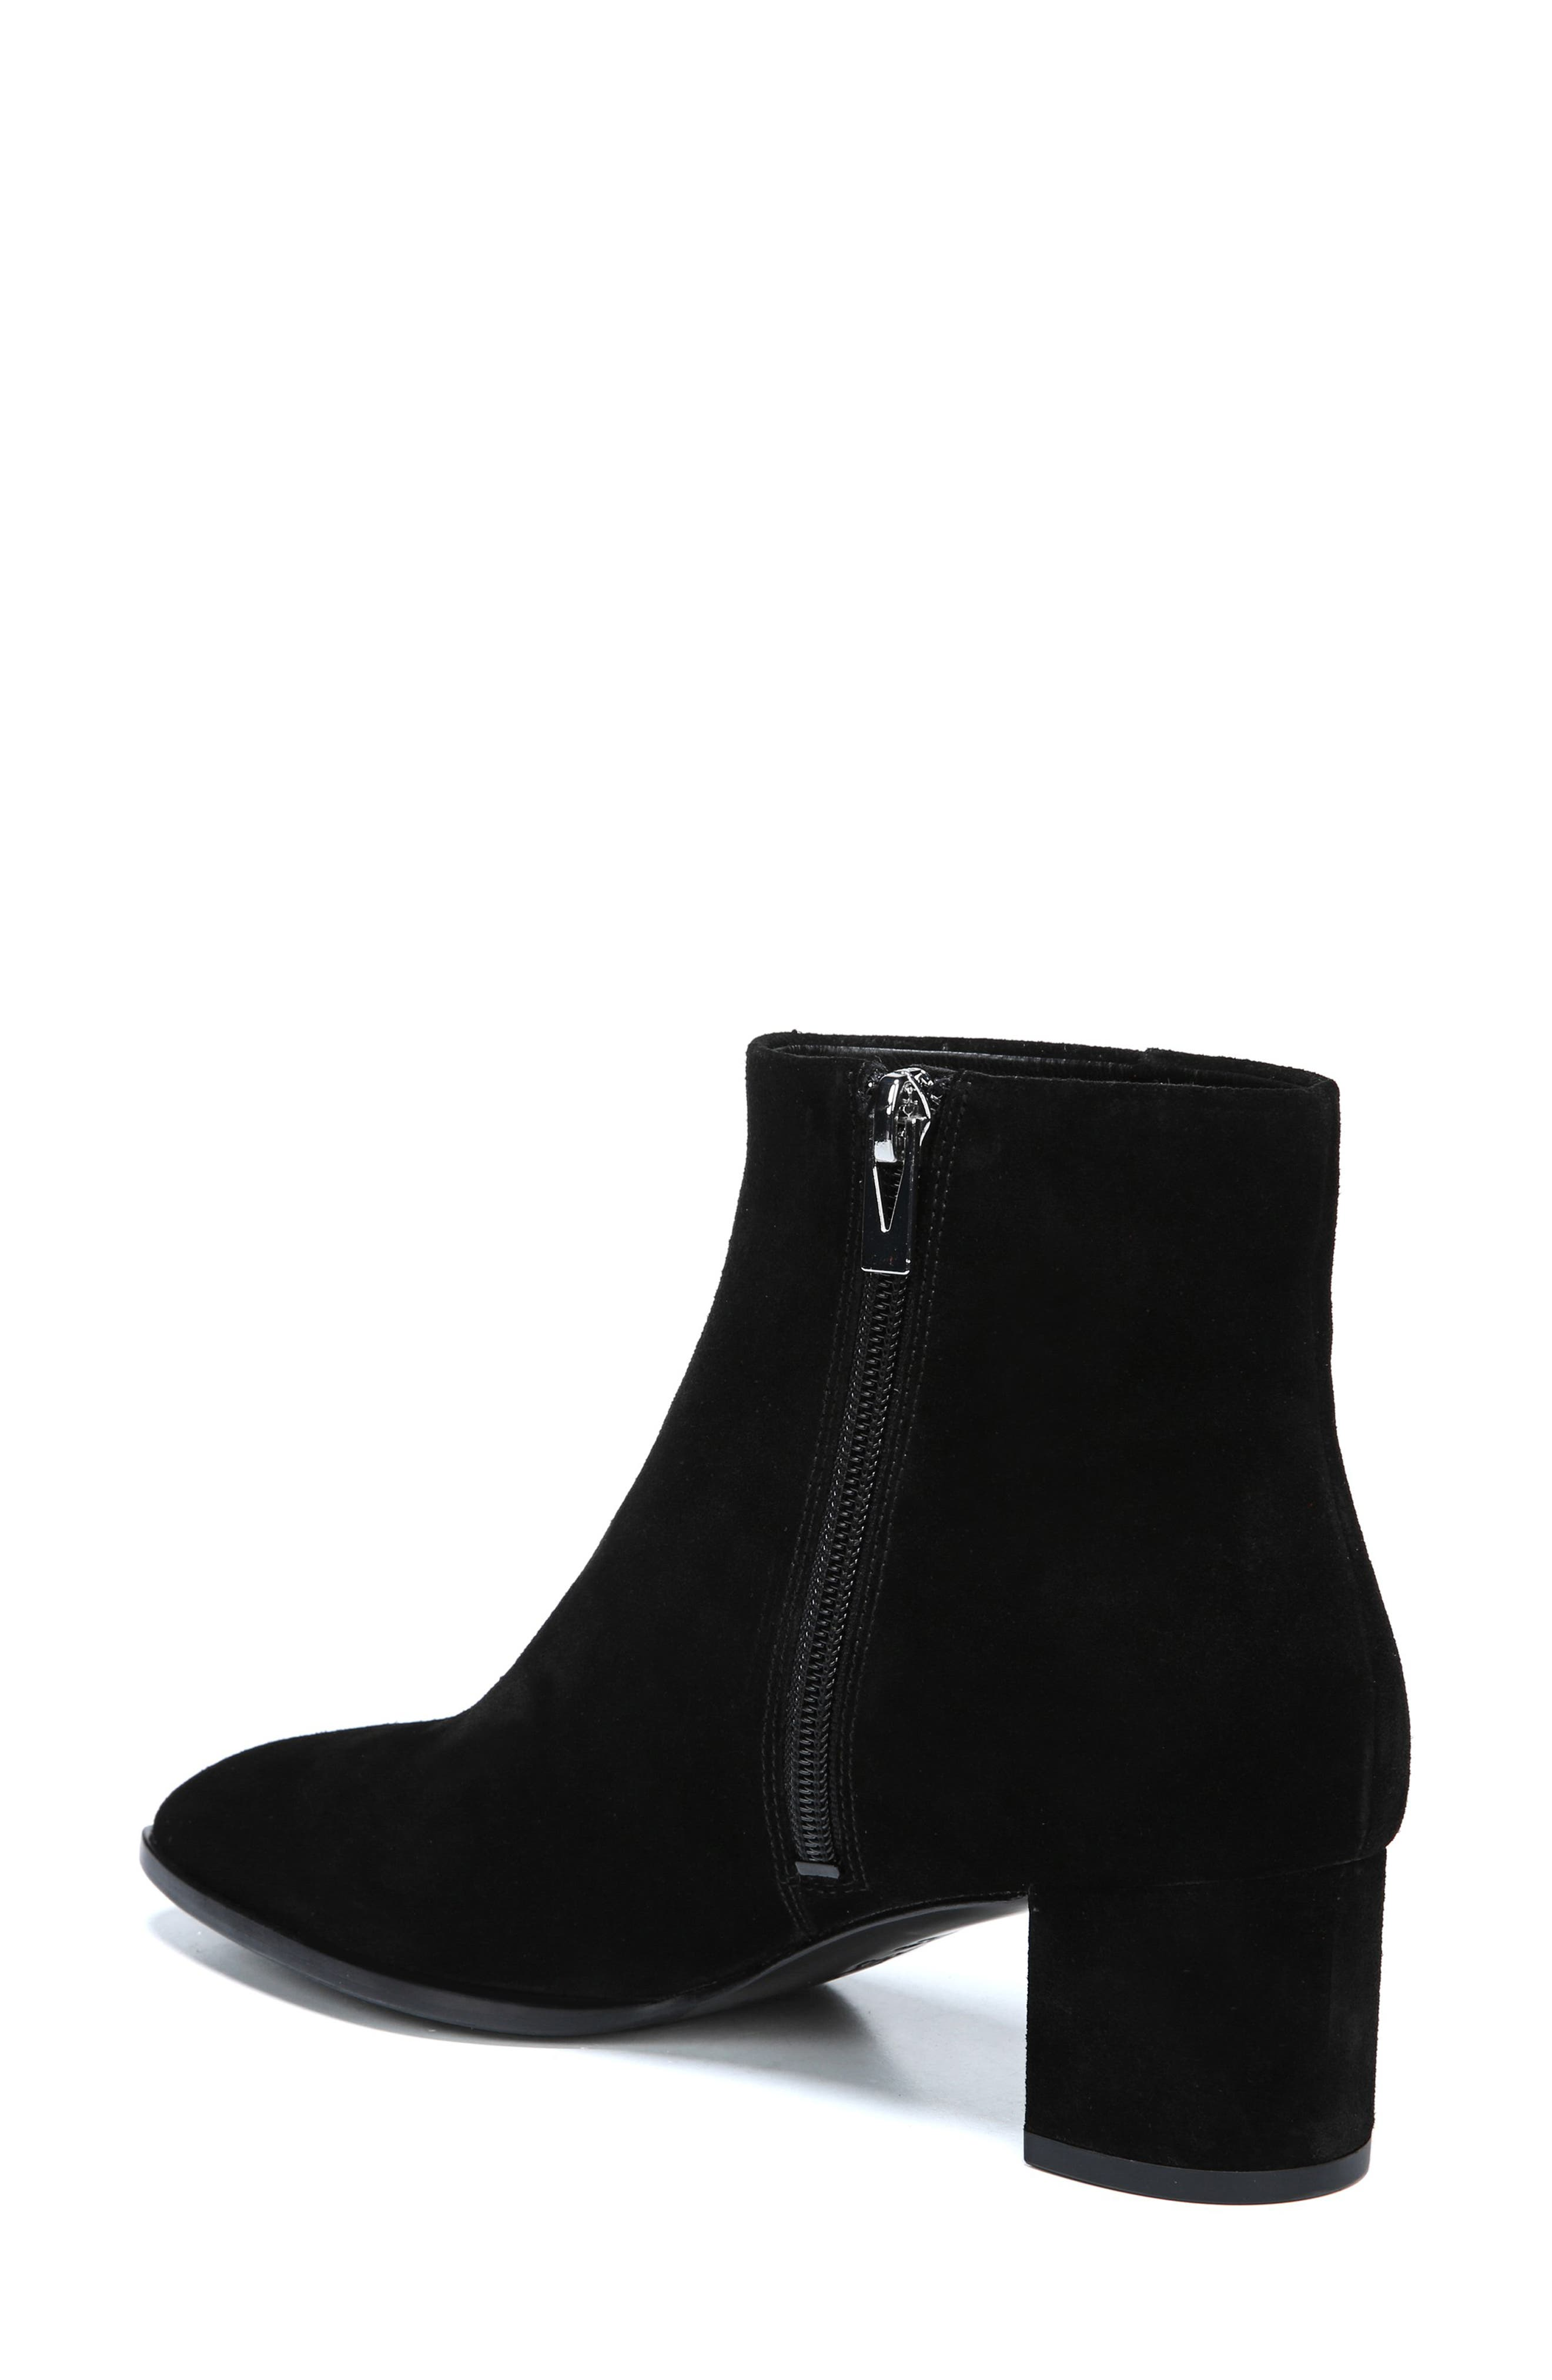 Vail Bootie,                             Alternate thumbnail 2, color,                             BLACK SUEDE